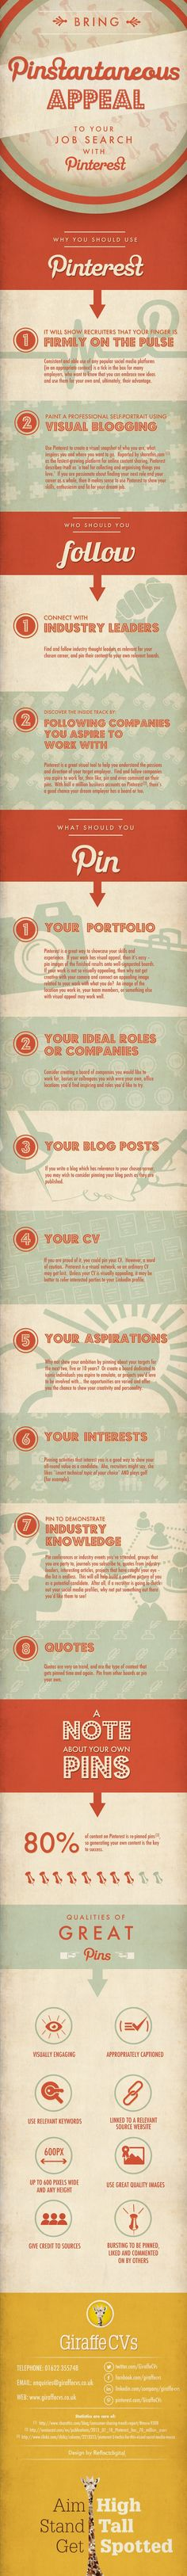 Bring pinstantaneous appeal to your job search with #Pinterest - #infographic  #jobsearch #socialmedia